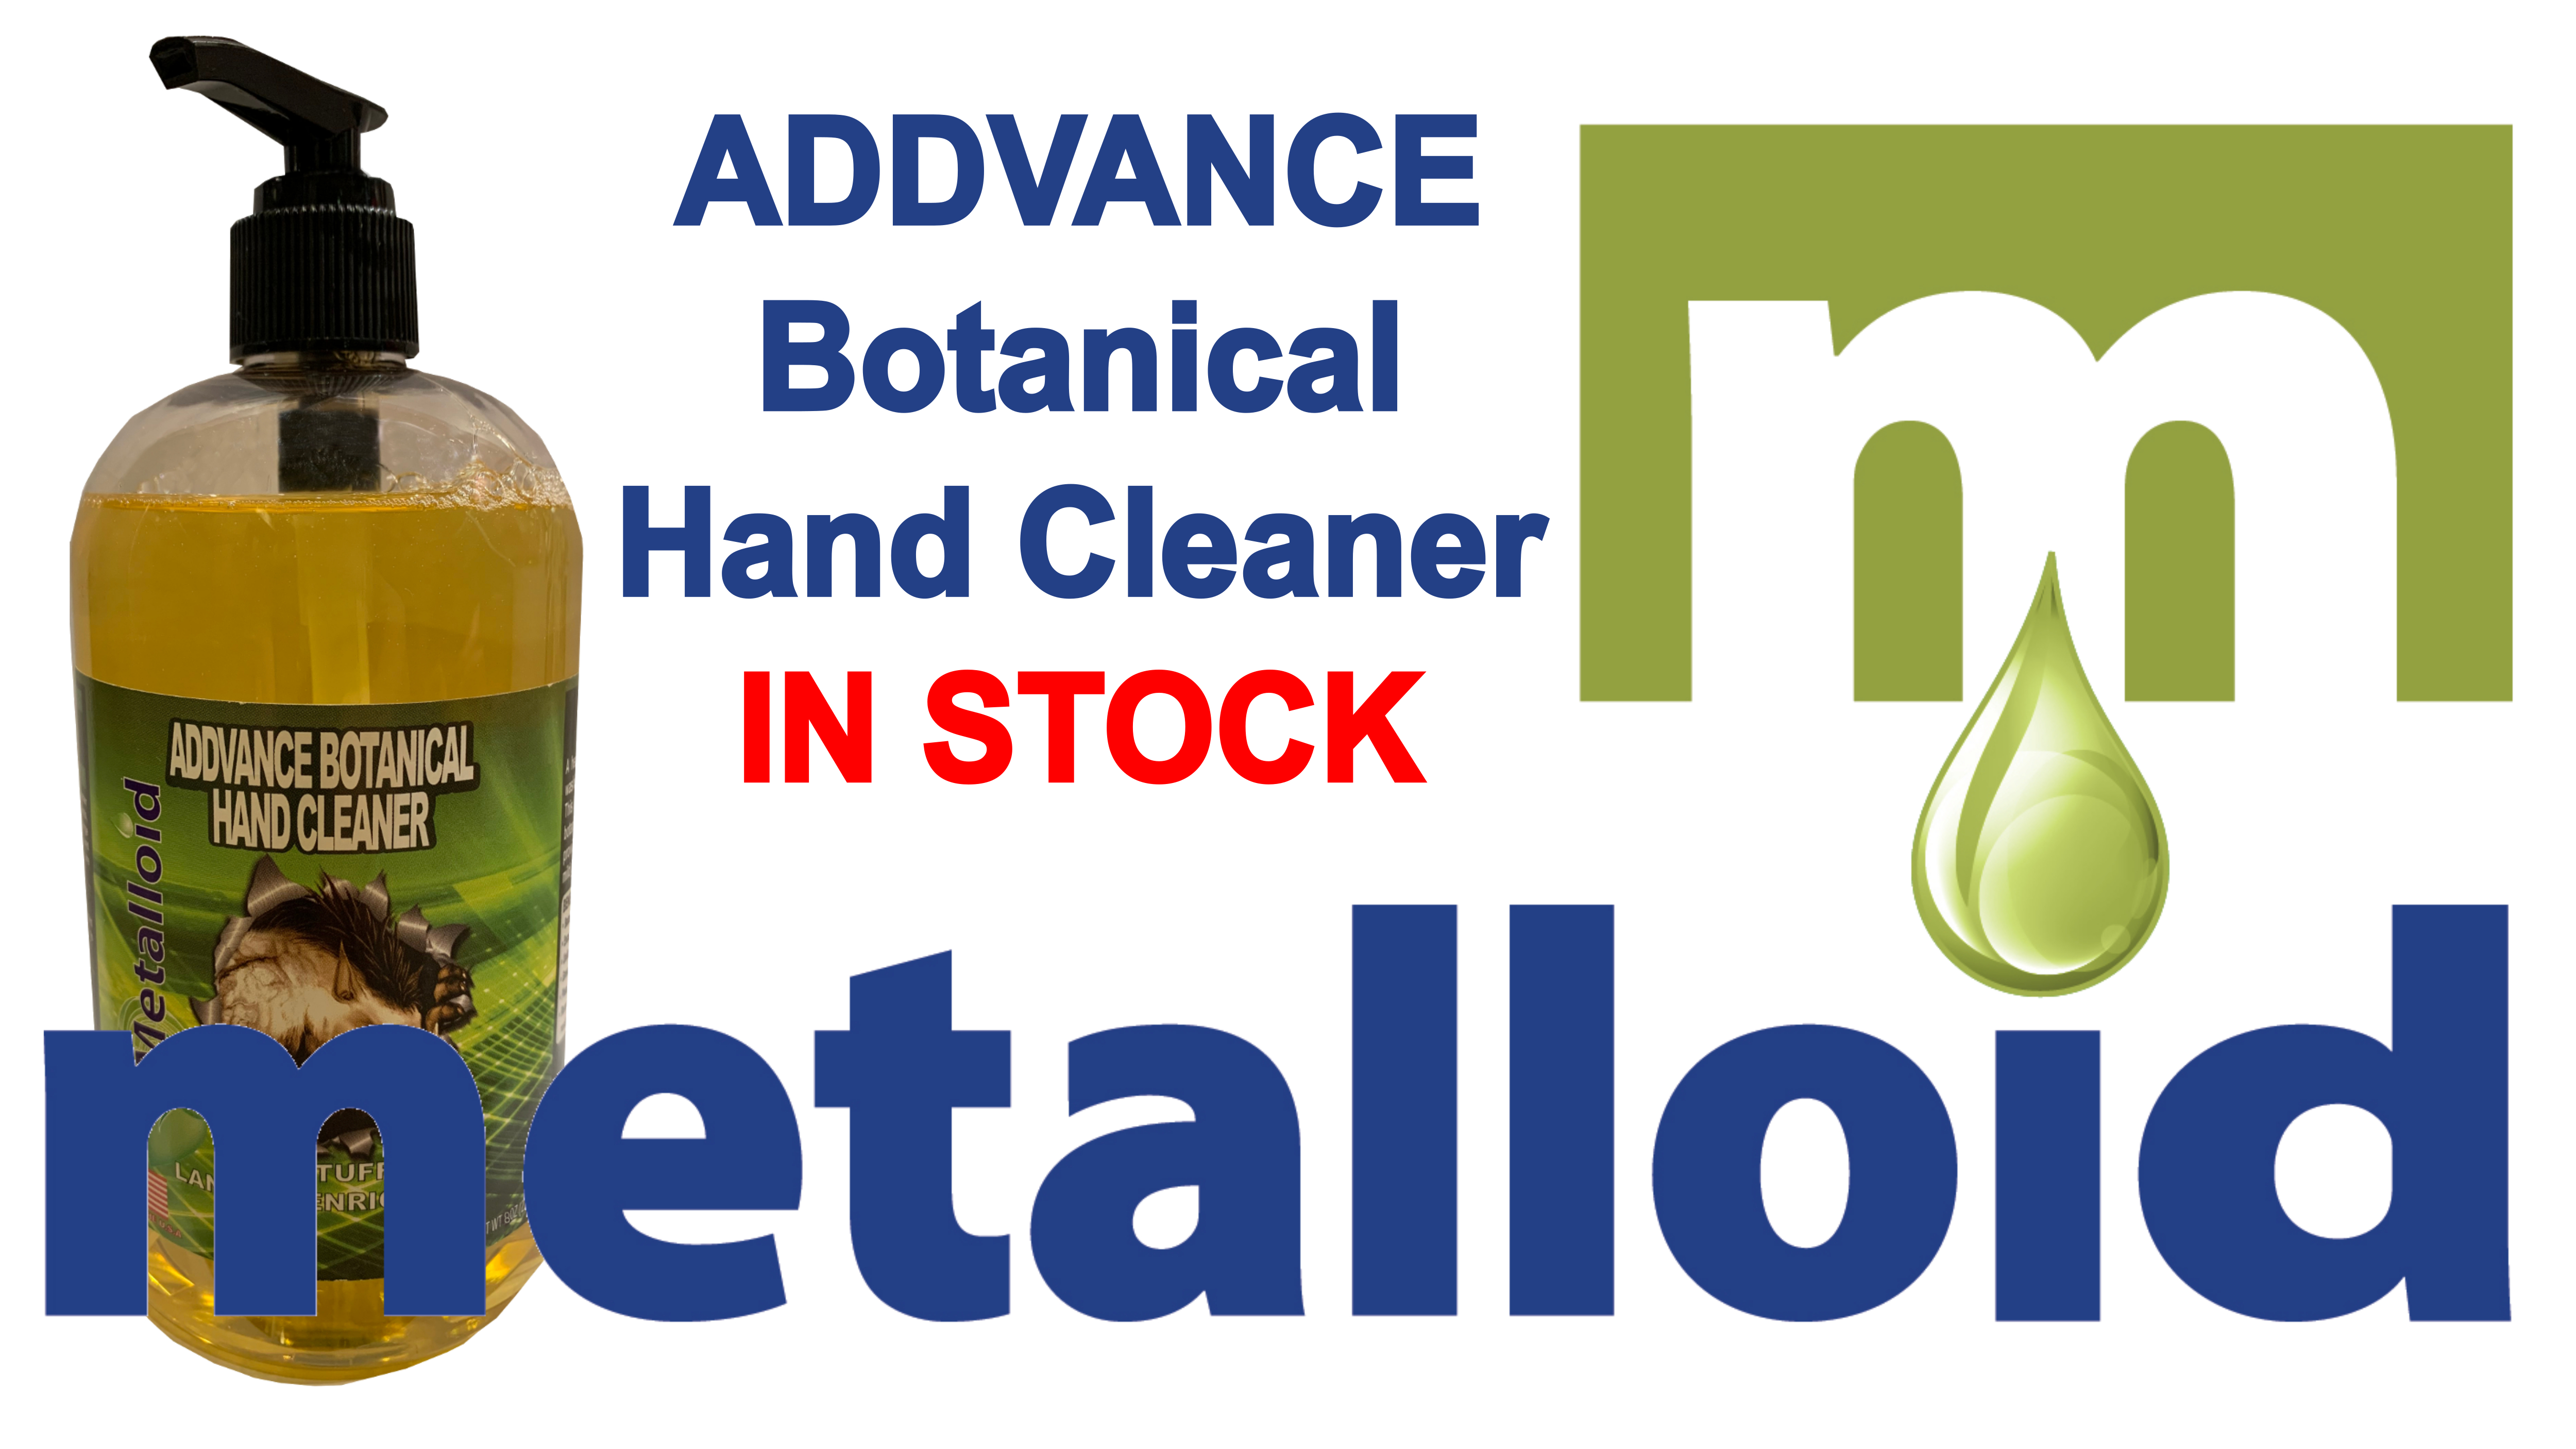 Metalloid Corporation Hand Cleaner